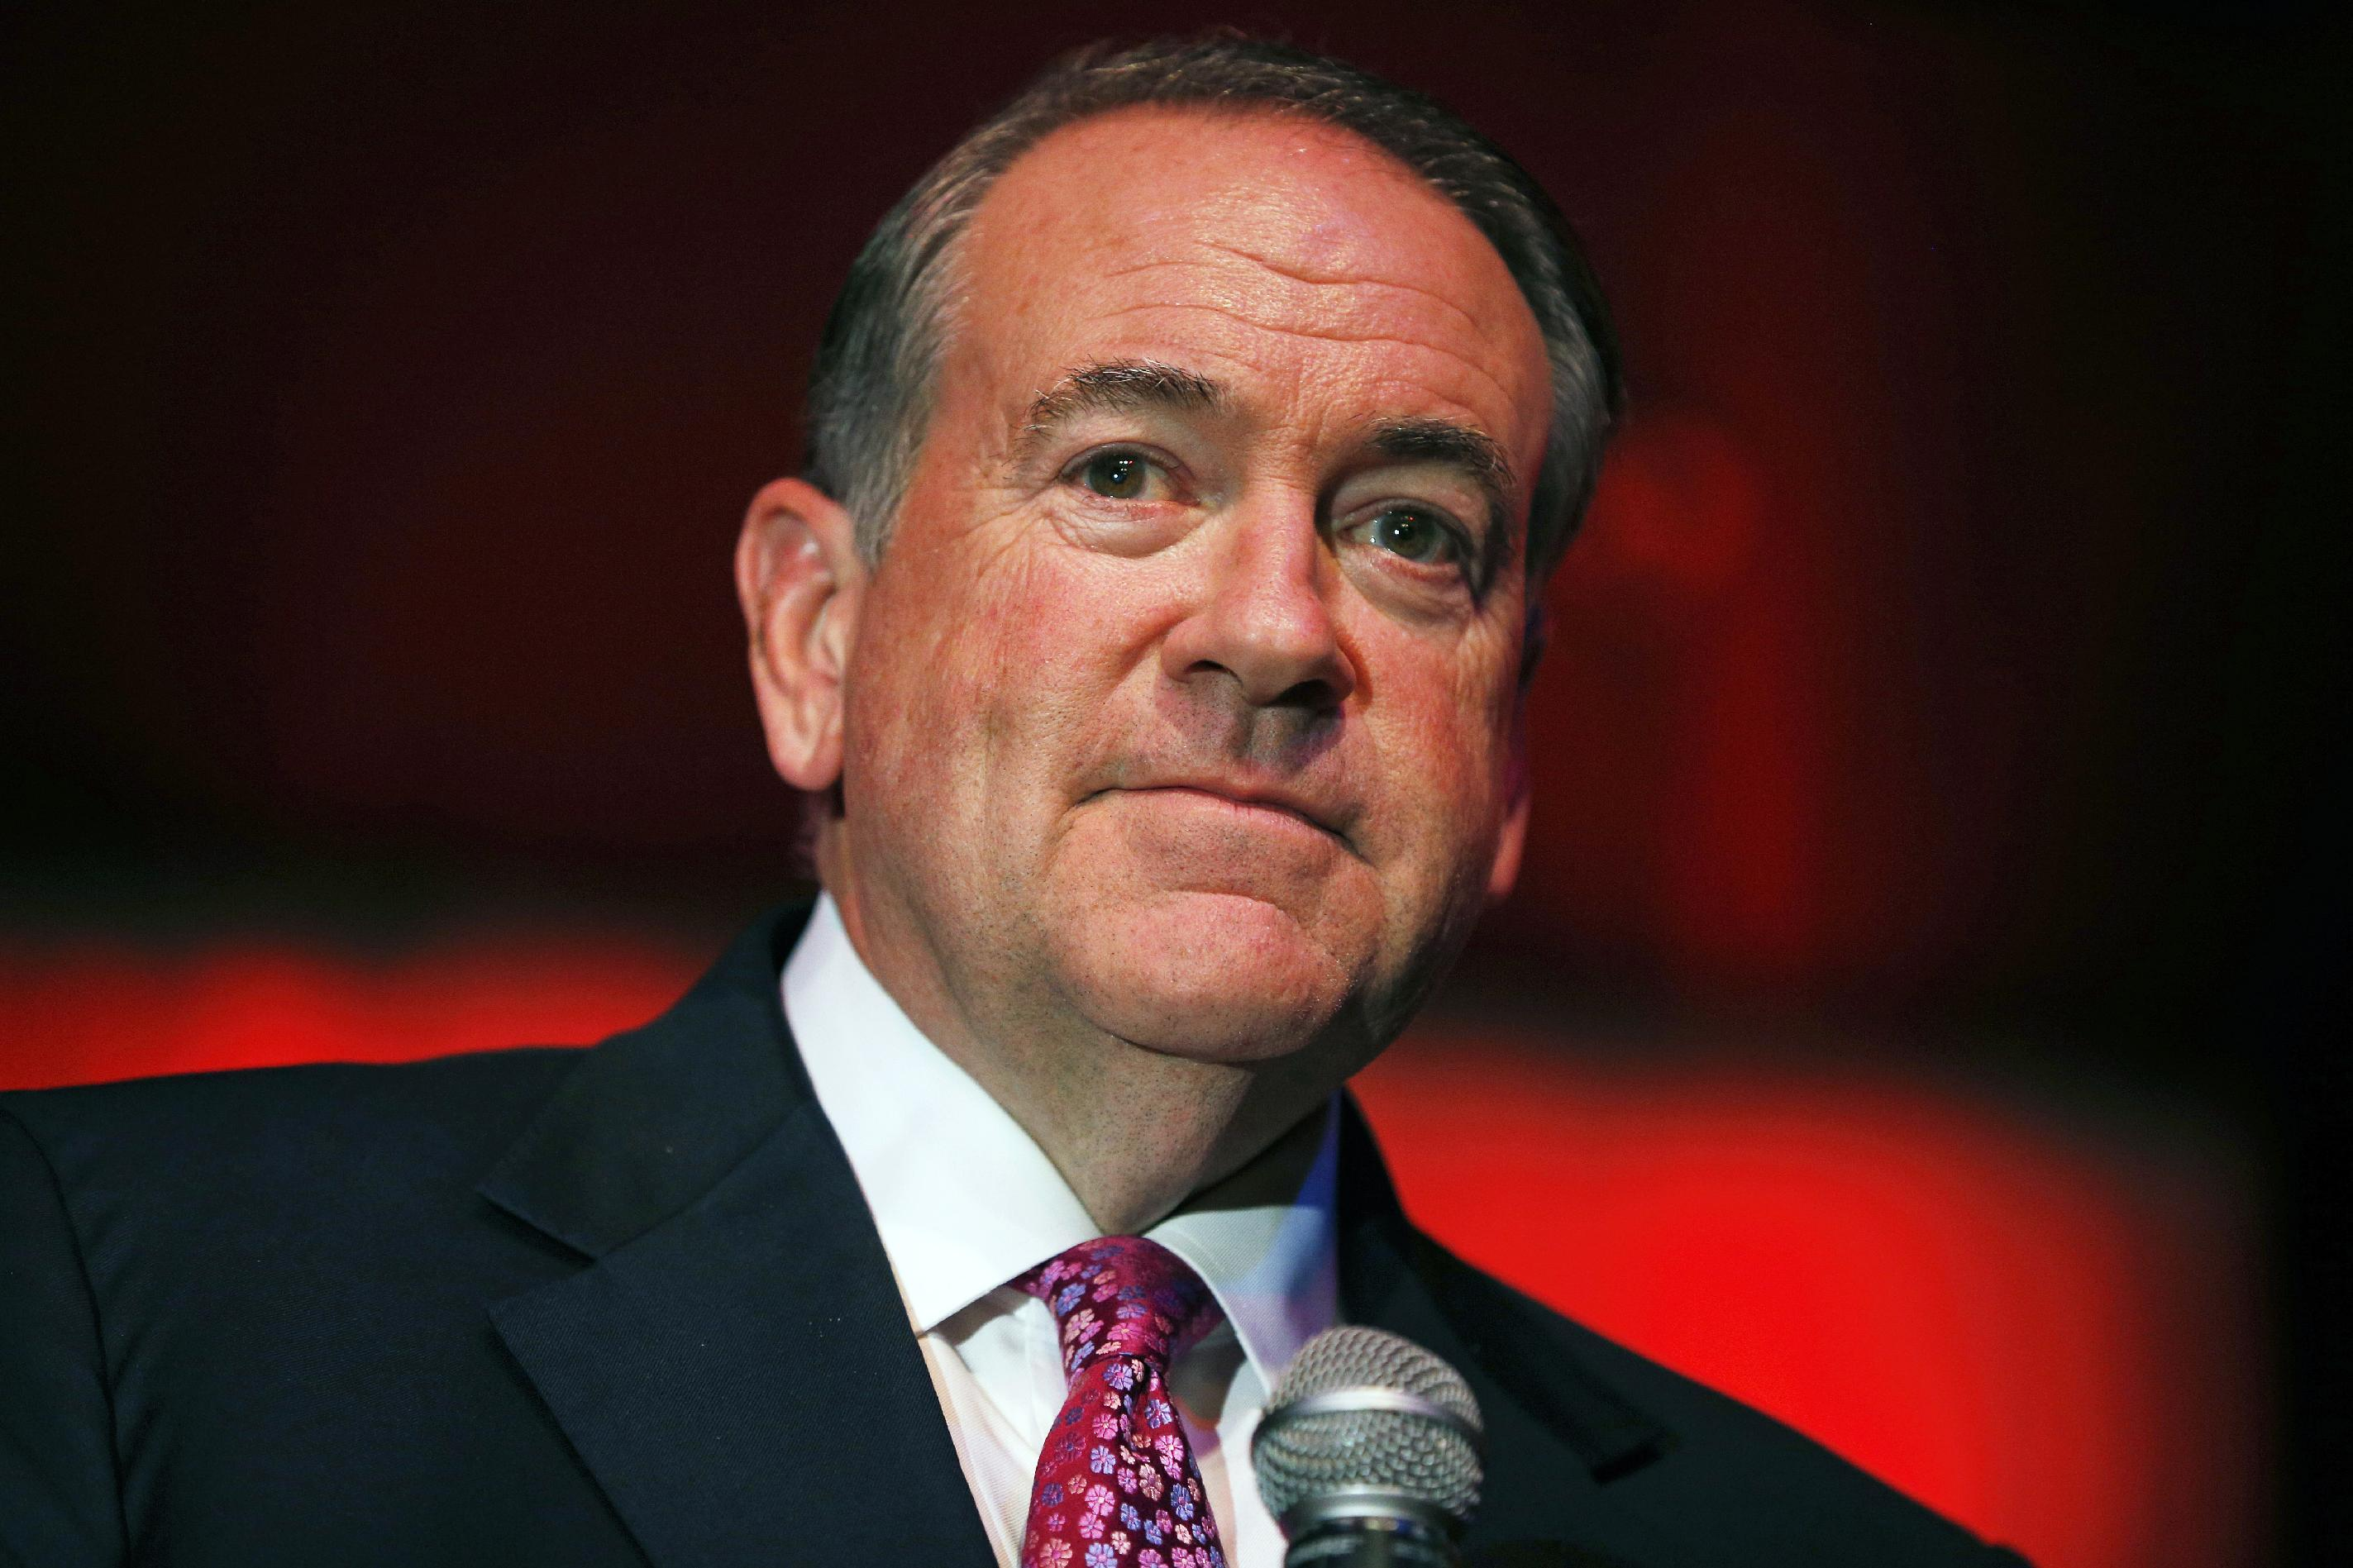 Debate line-up illustrates power of Fox News in GOP campaign